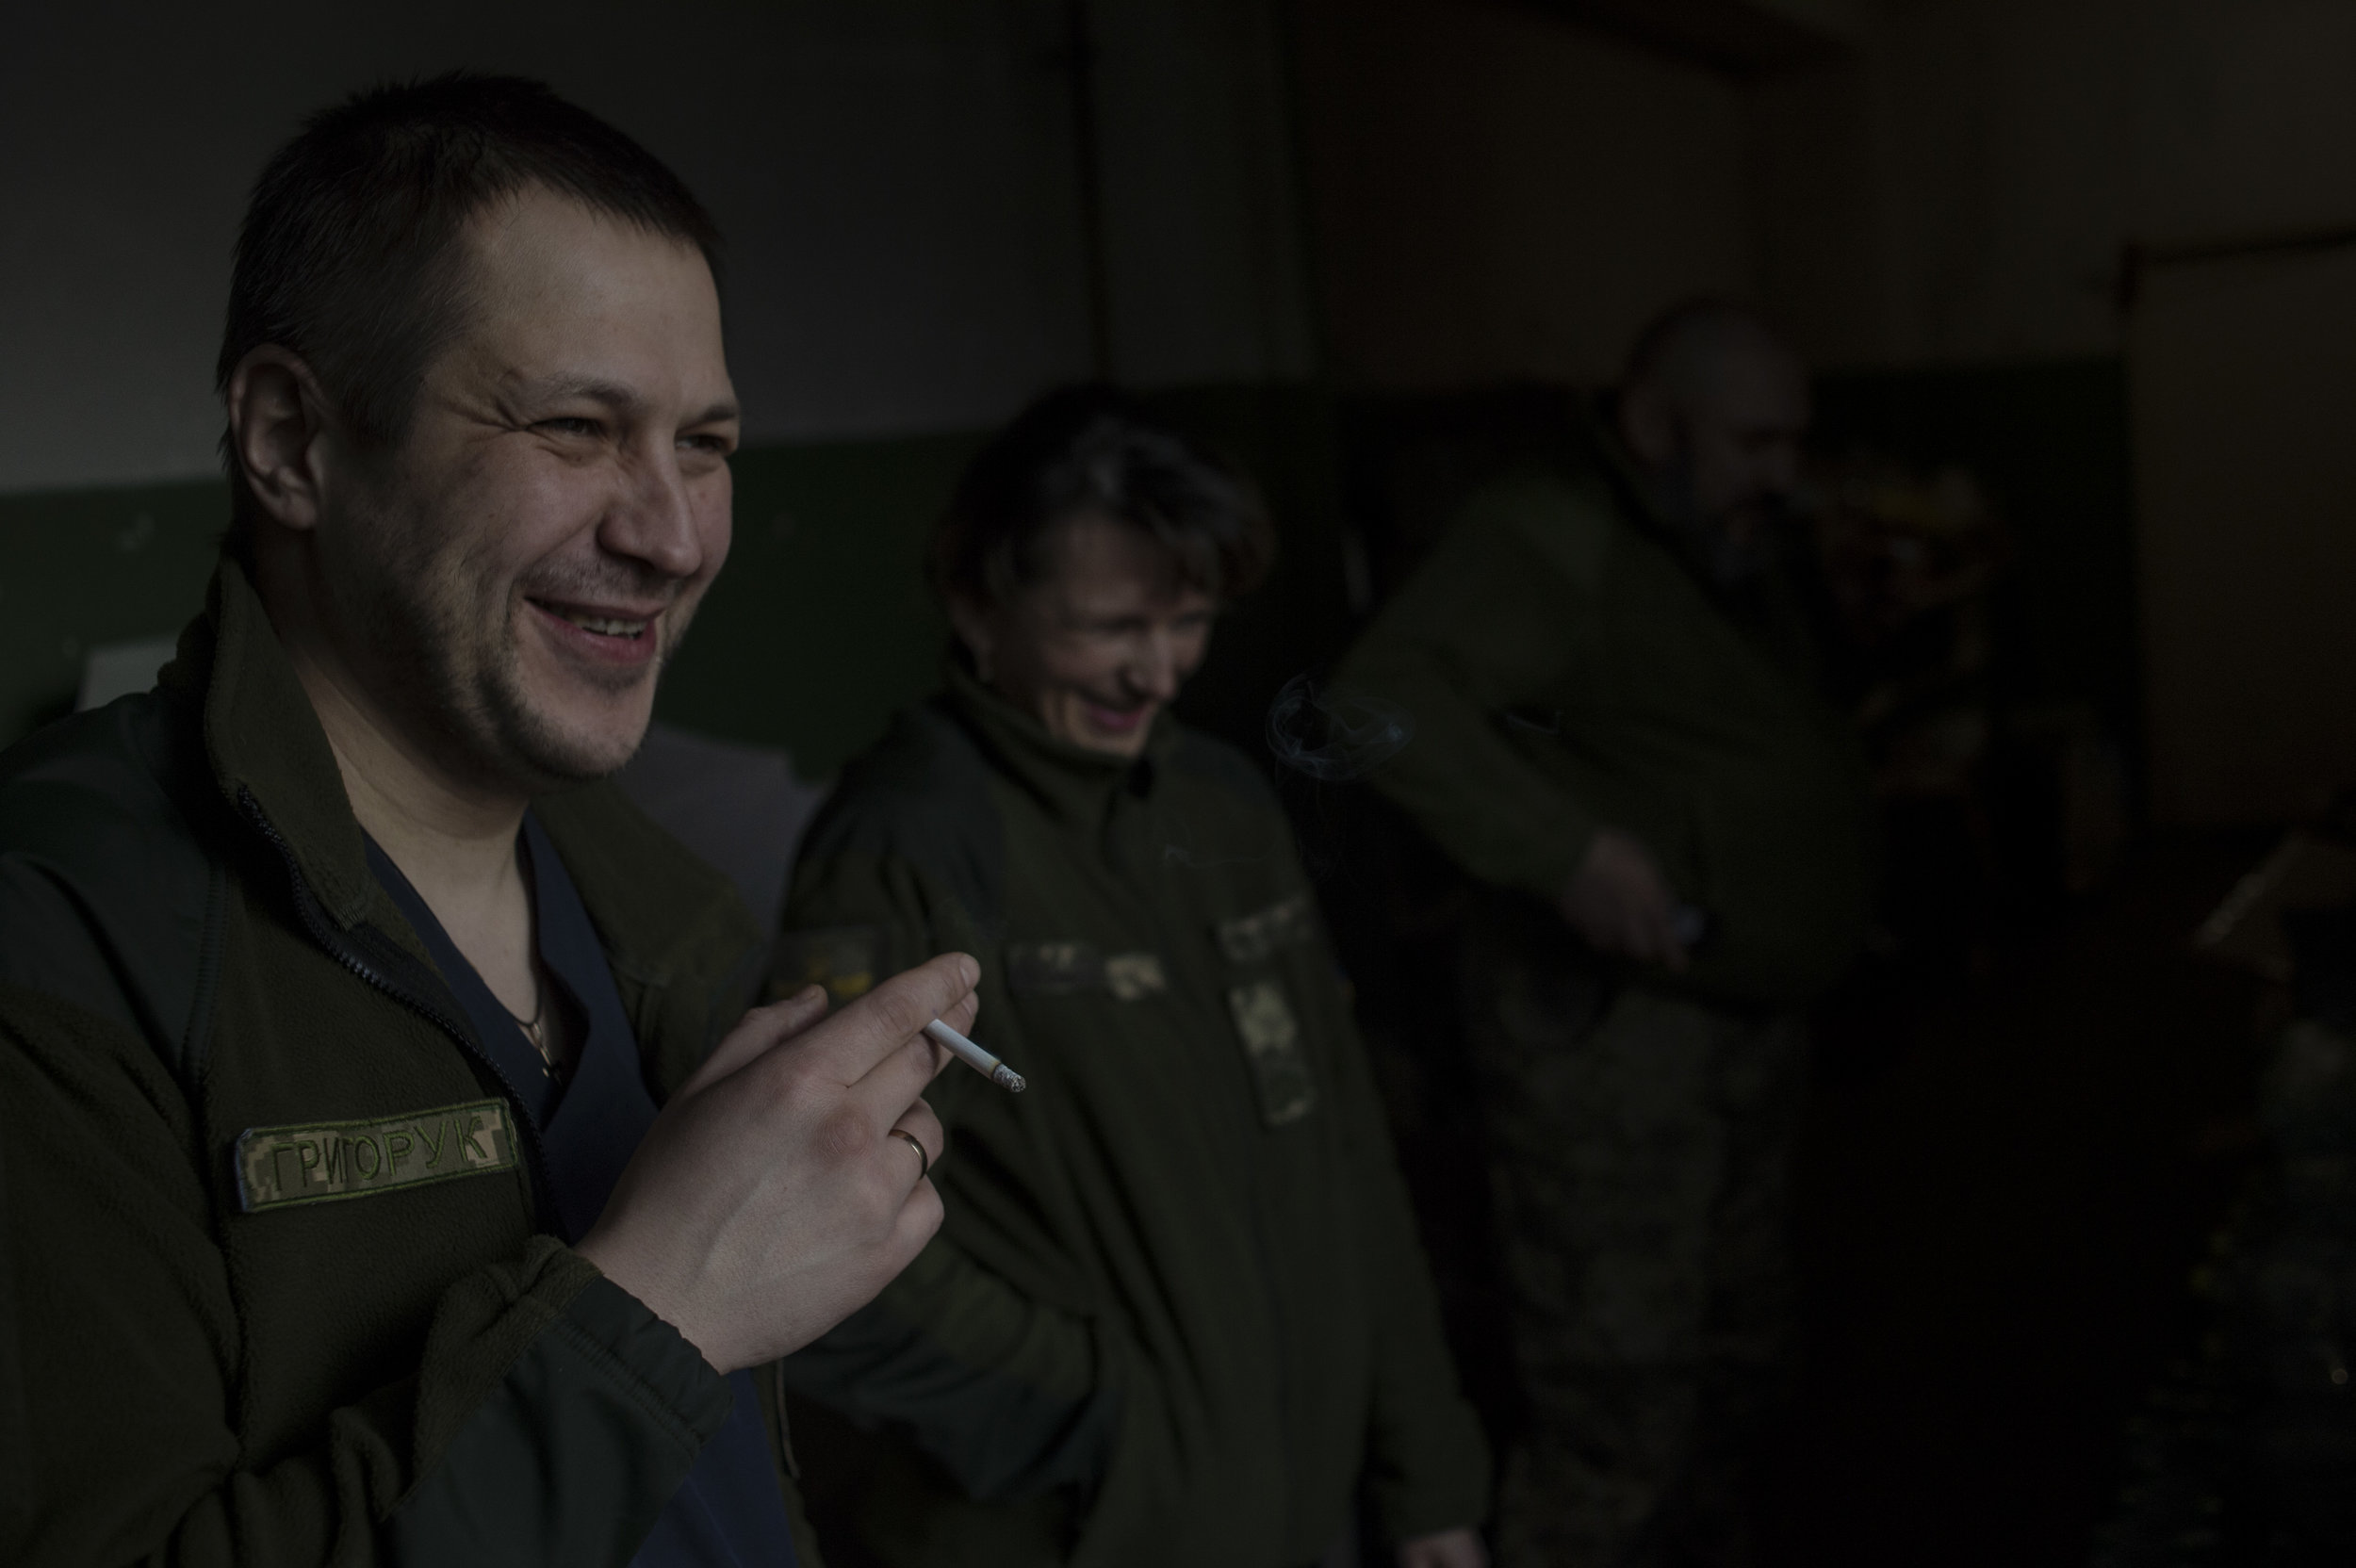 Ukrainian military surgeosn and doctors enjoy a smoke break while on shift at a hospital in Zolote. The hospitals that the military uses are shared with civilian doctors.